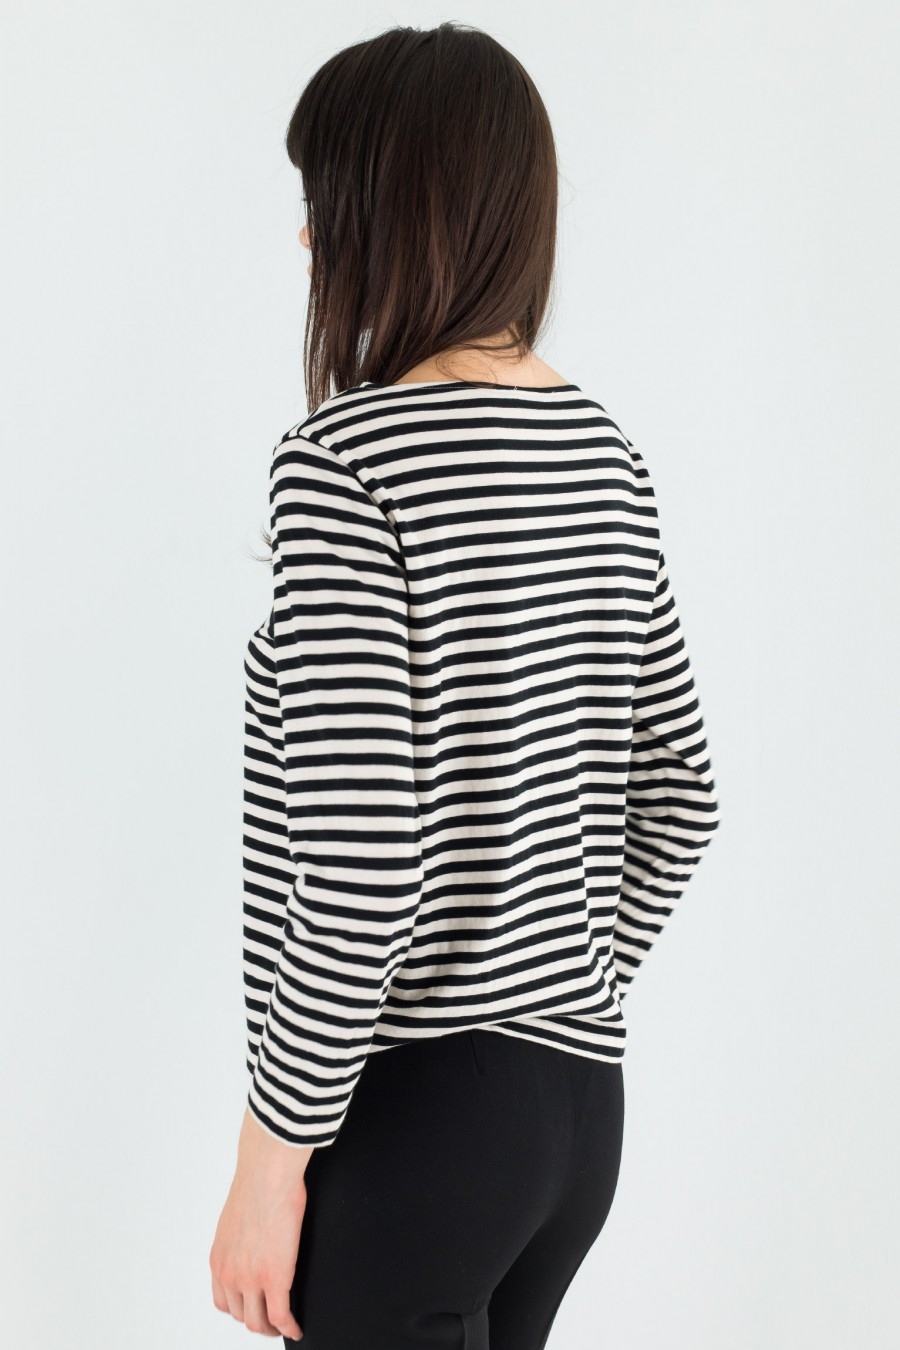 Lazzari cotton striped t-shirt